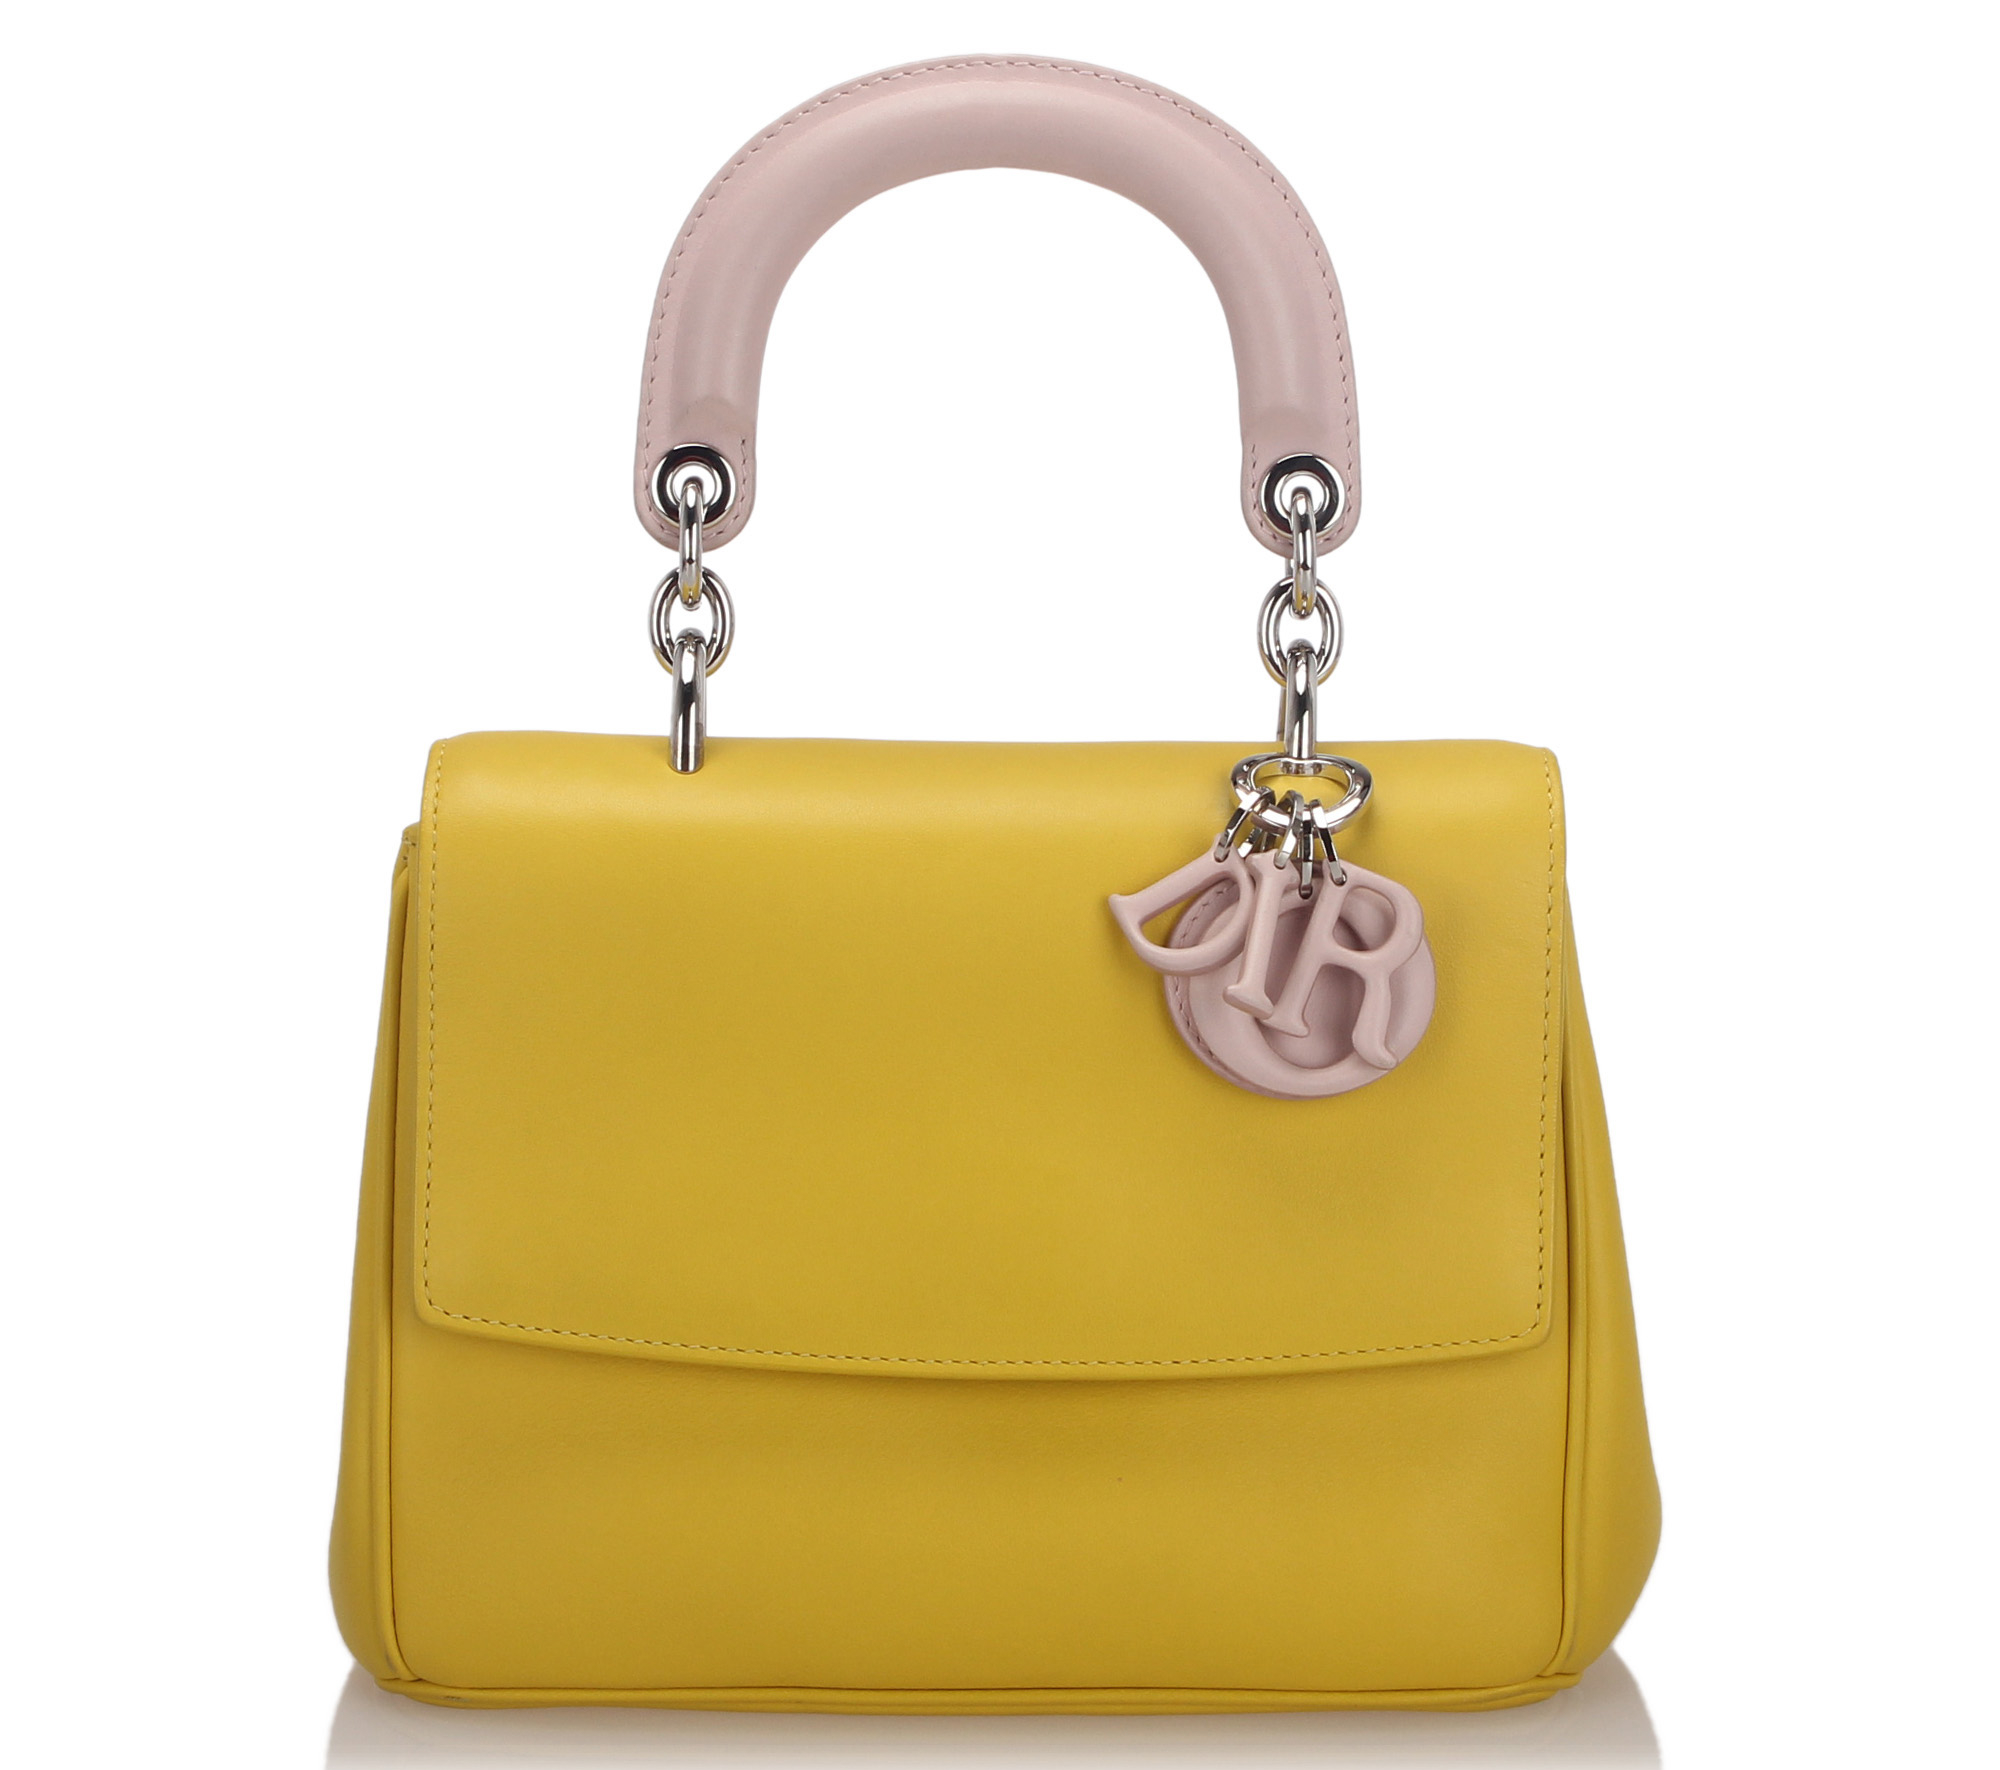 Dior Mini Be Dior Leather Flap Bag